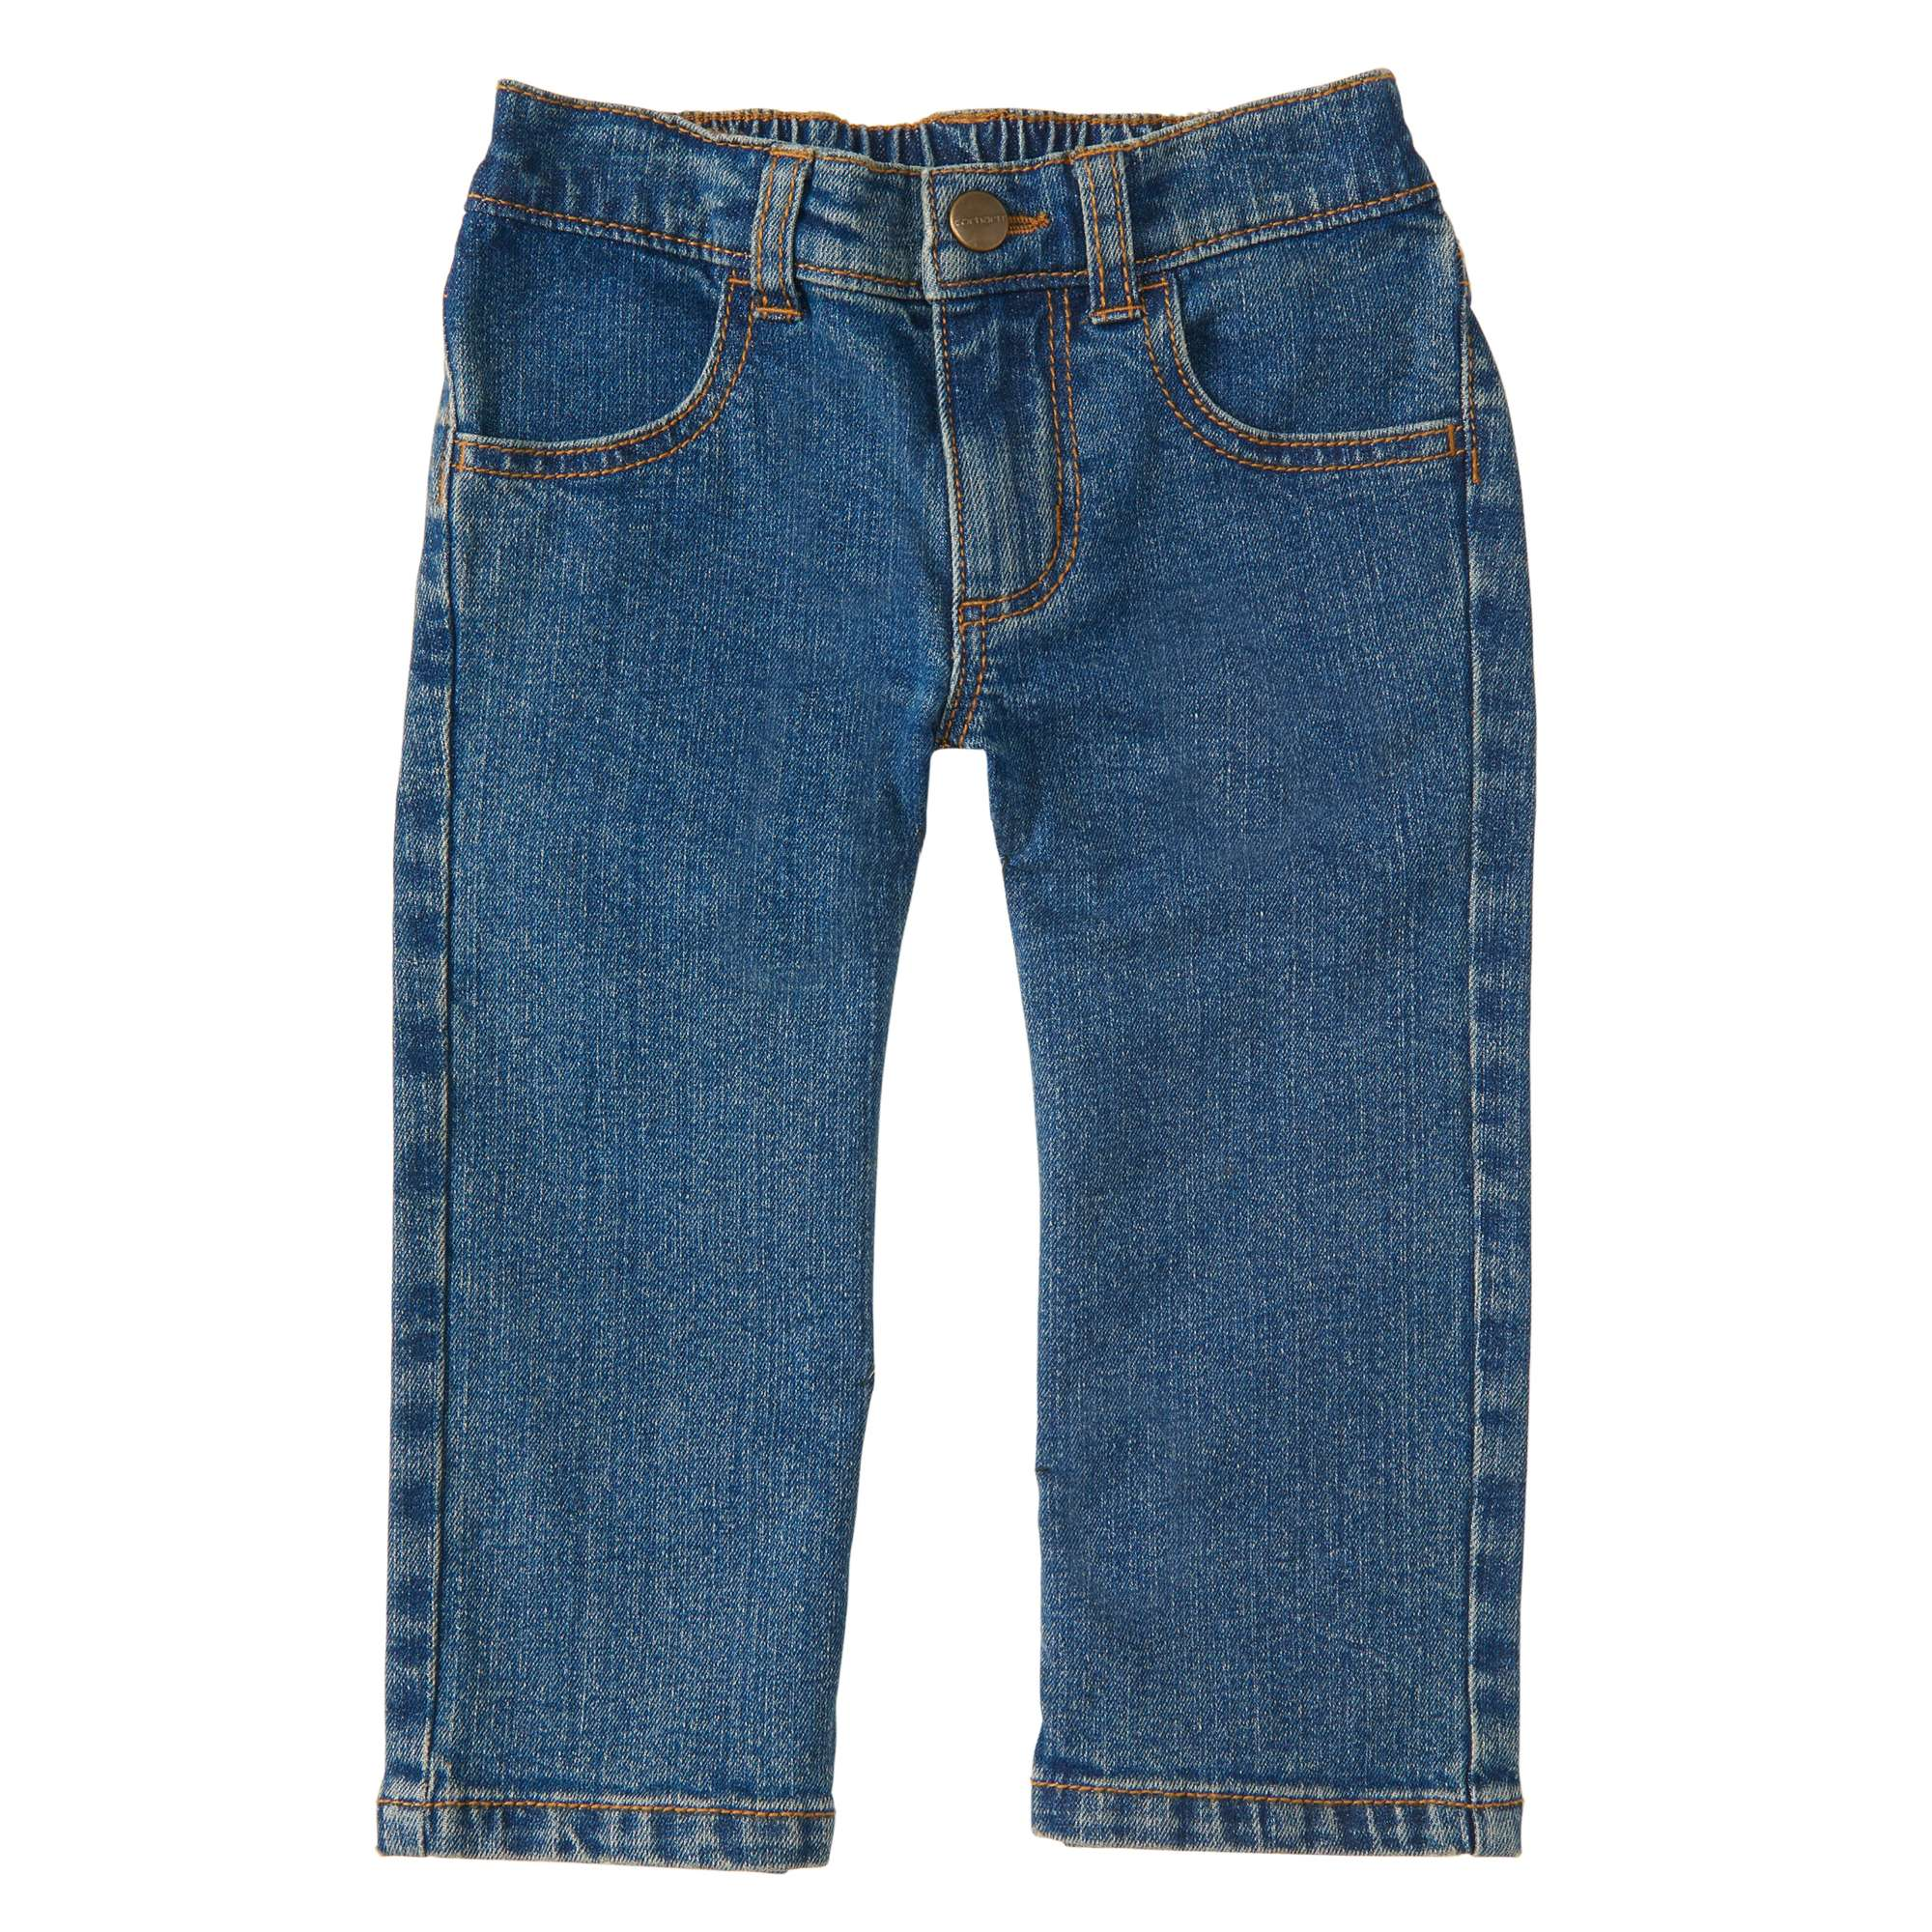 Carhartt Denim Pant